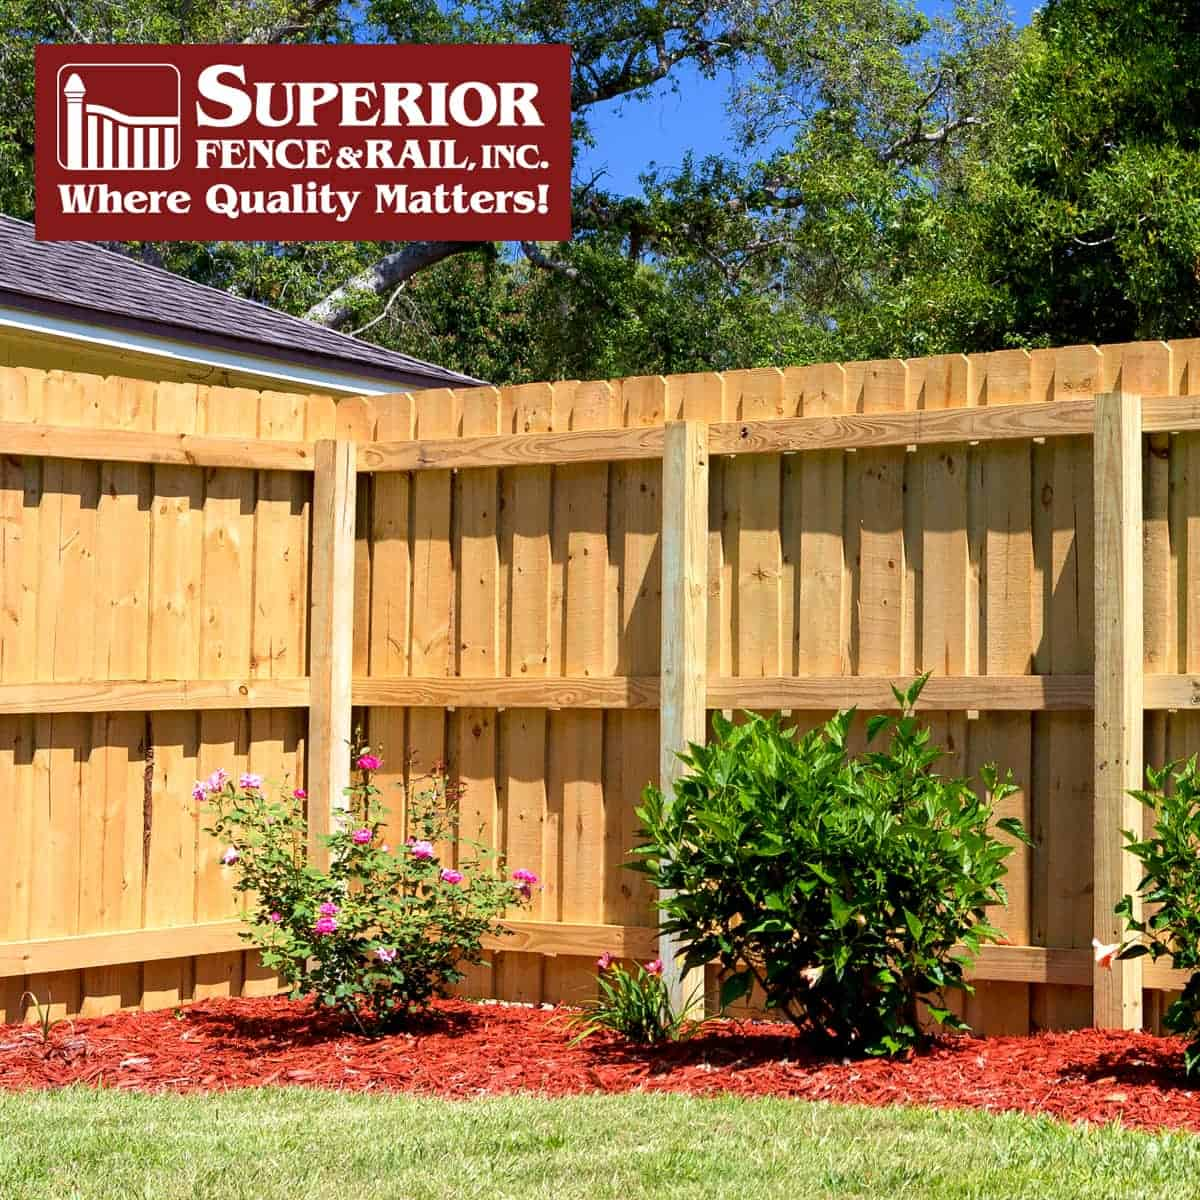 Wingate fence company contractor